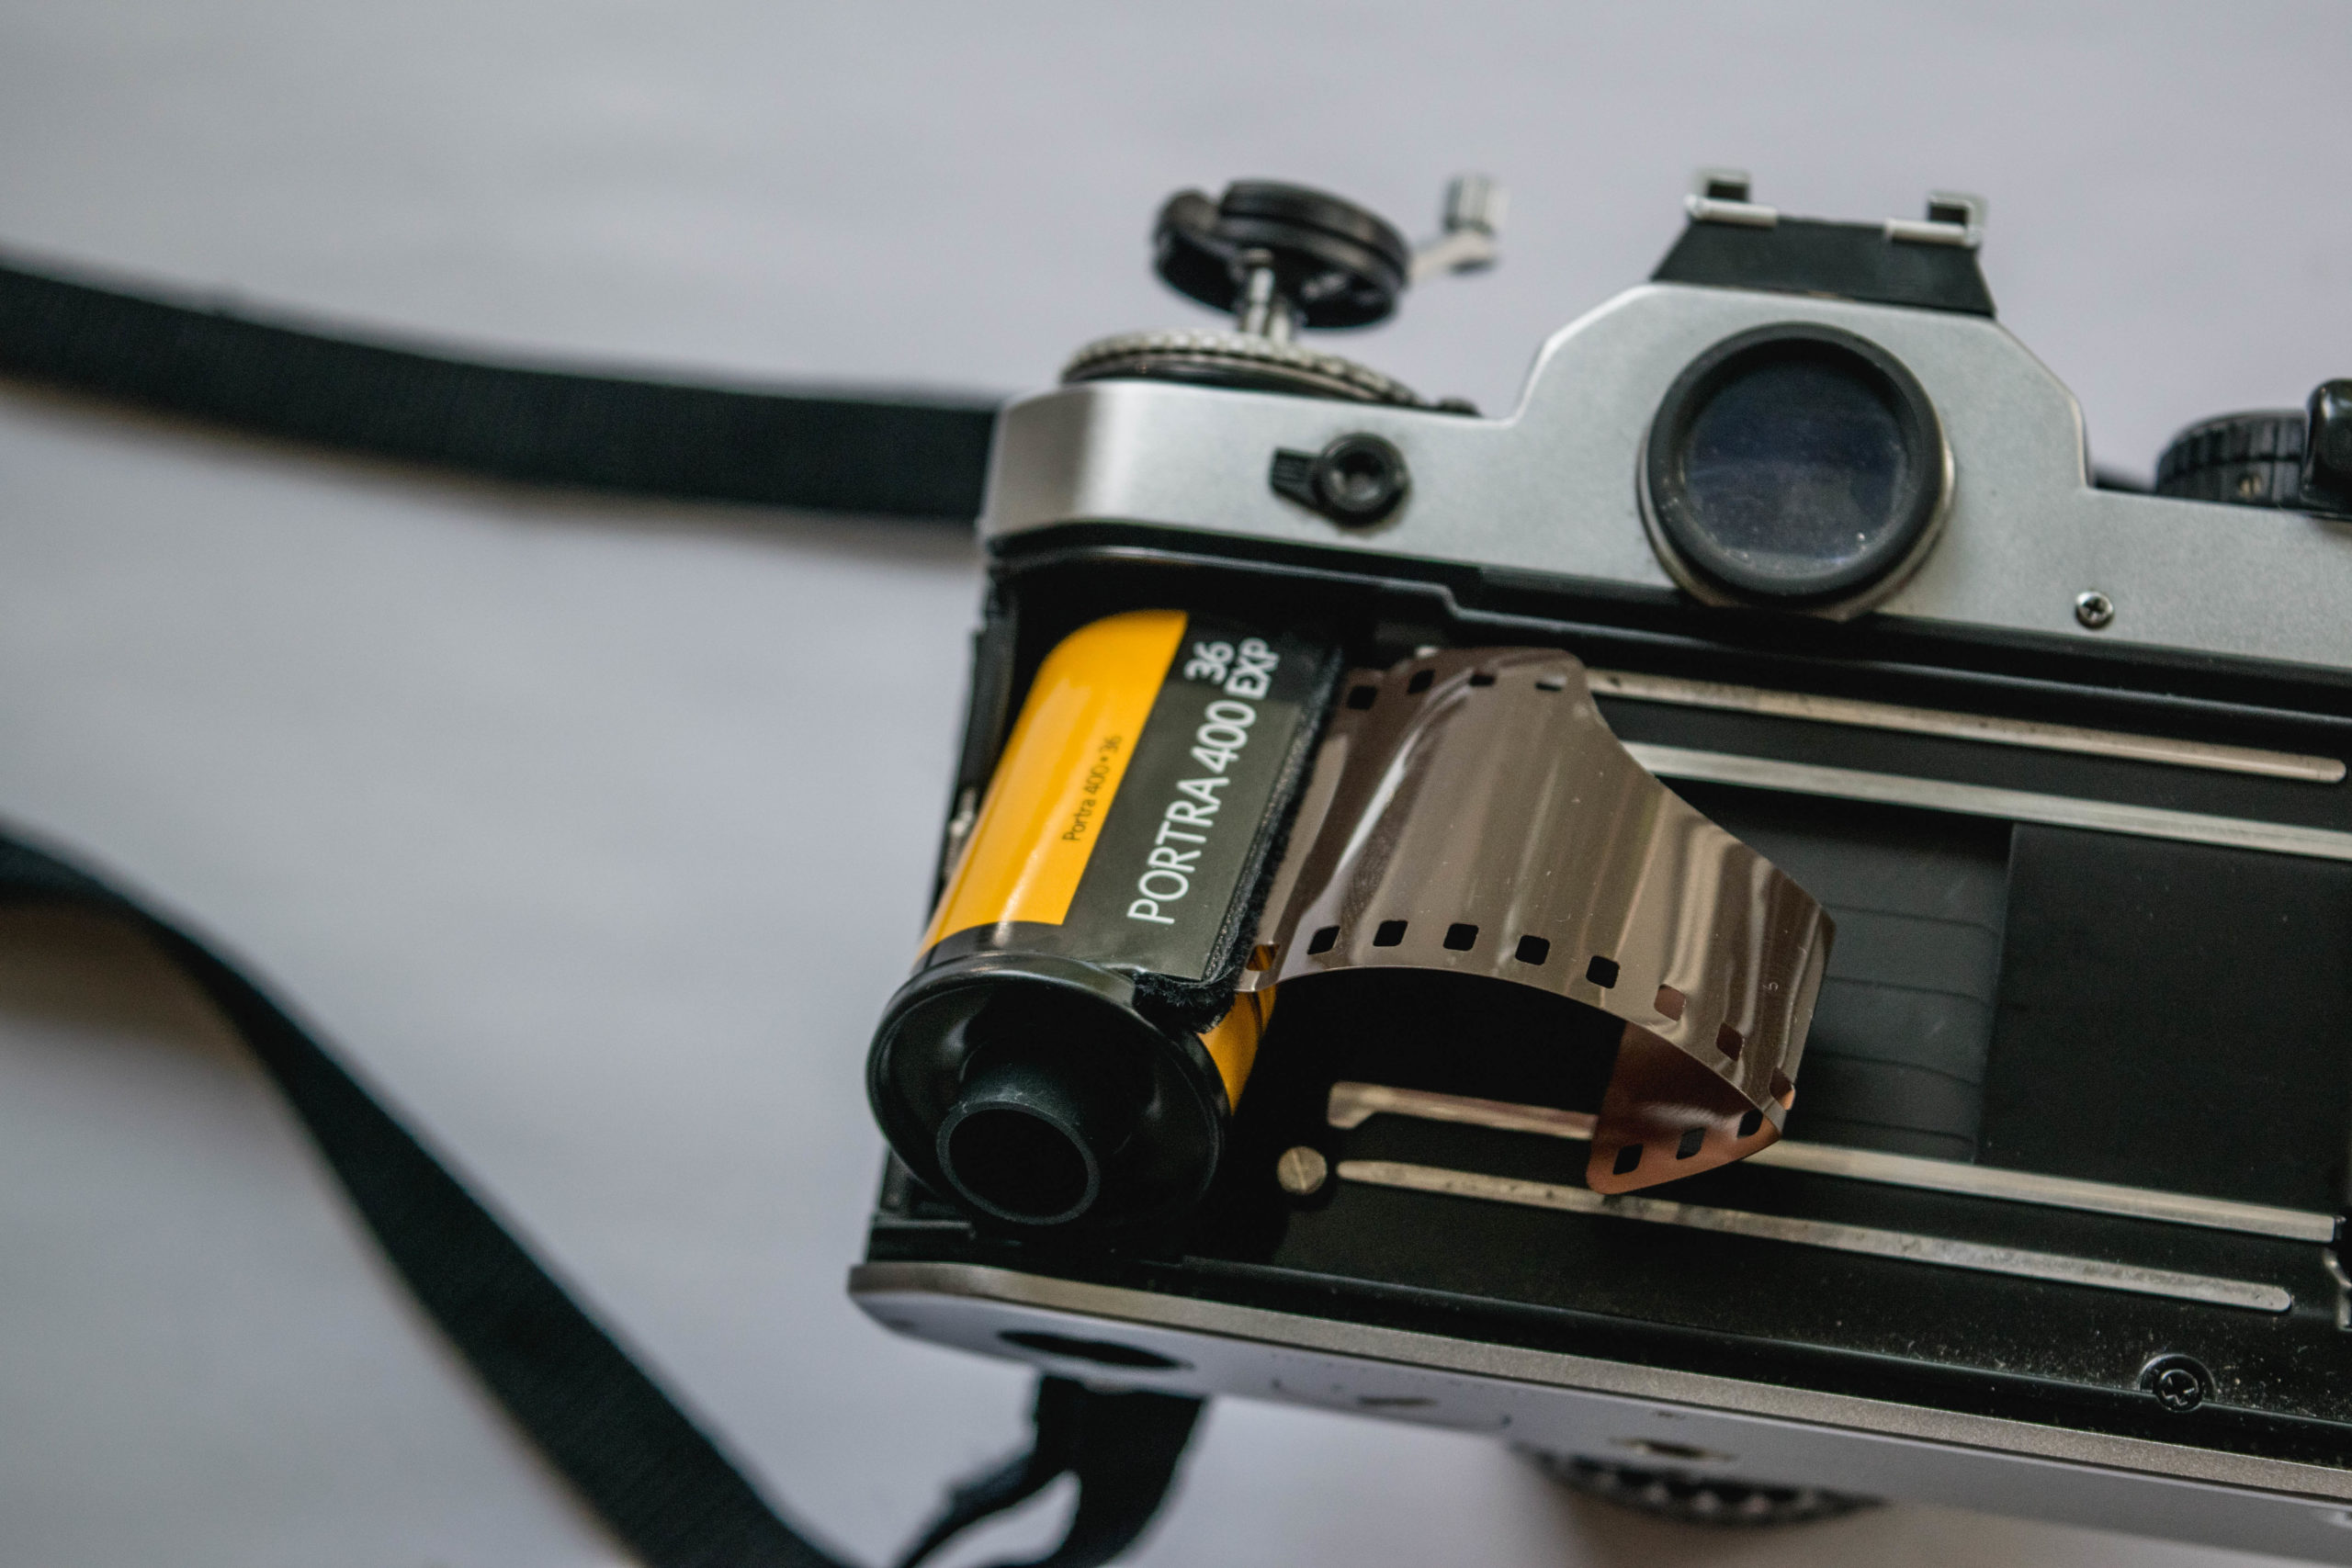 Film Chamber - How to Load Film into a 35mm Film Camera - FilterGrade Blog